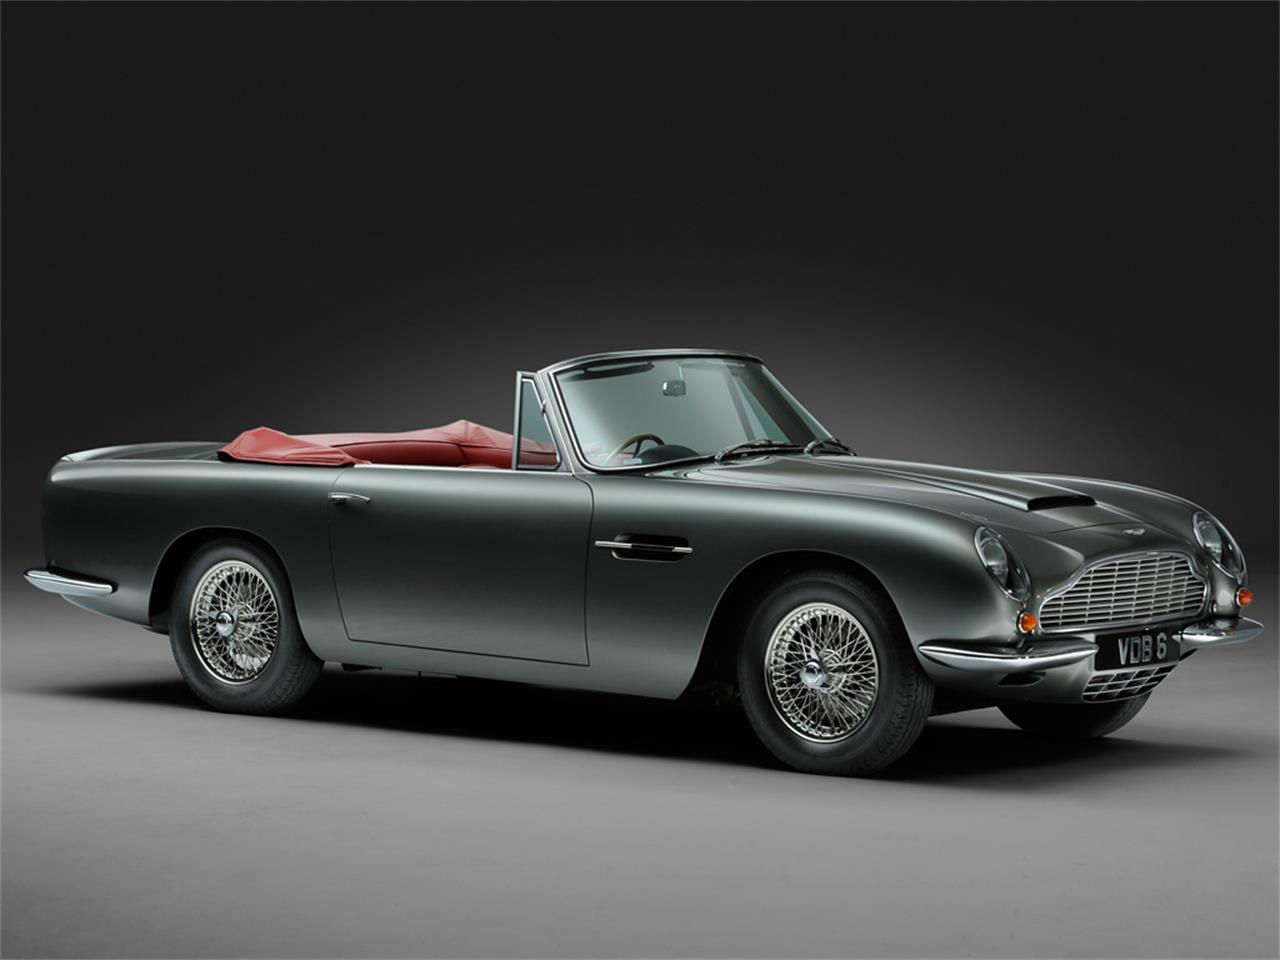 Large Picture of 1967 DB6 MKI Vantage Volante Auction Vehicle Offered by JD Classics LTD - IVCB